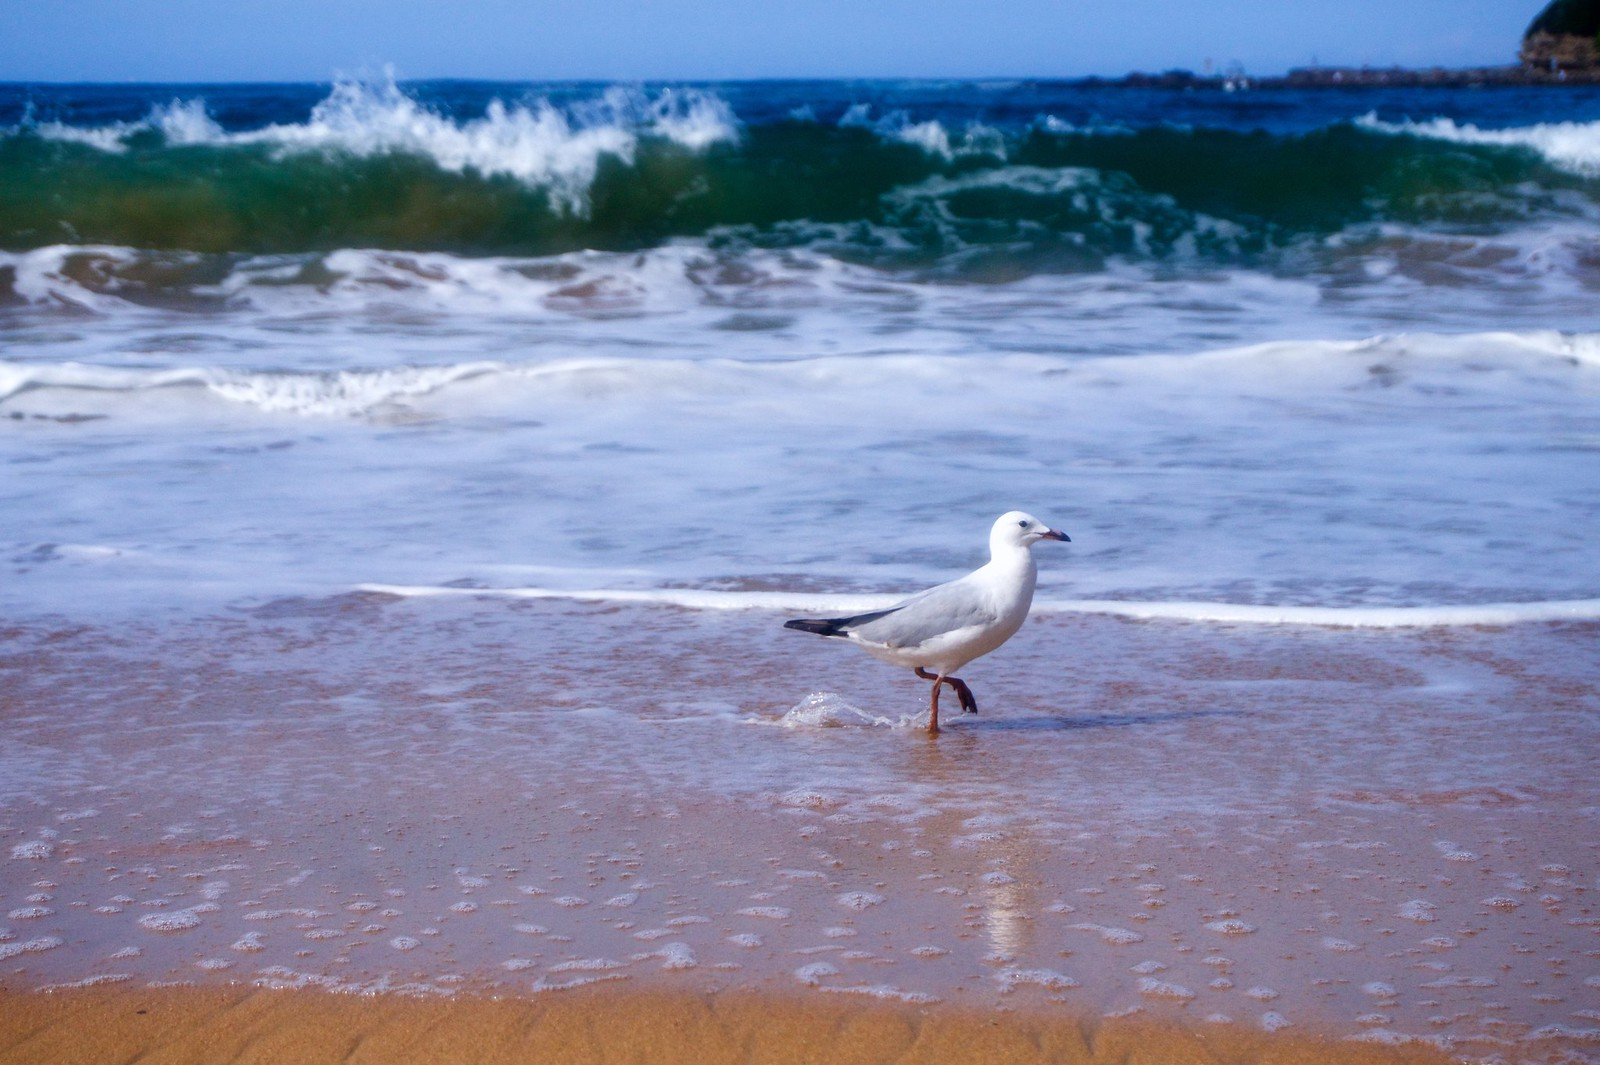 A bird walking at Terrigal Beach